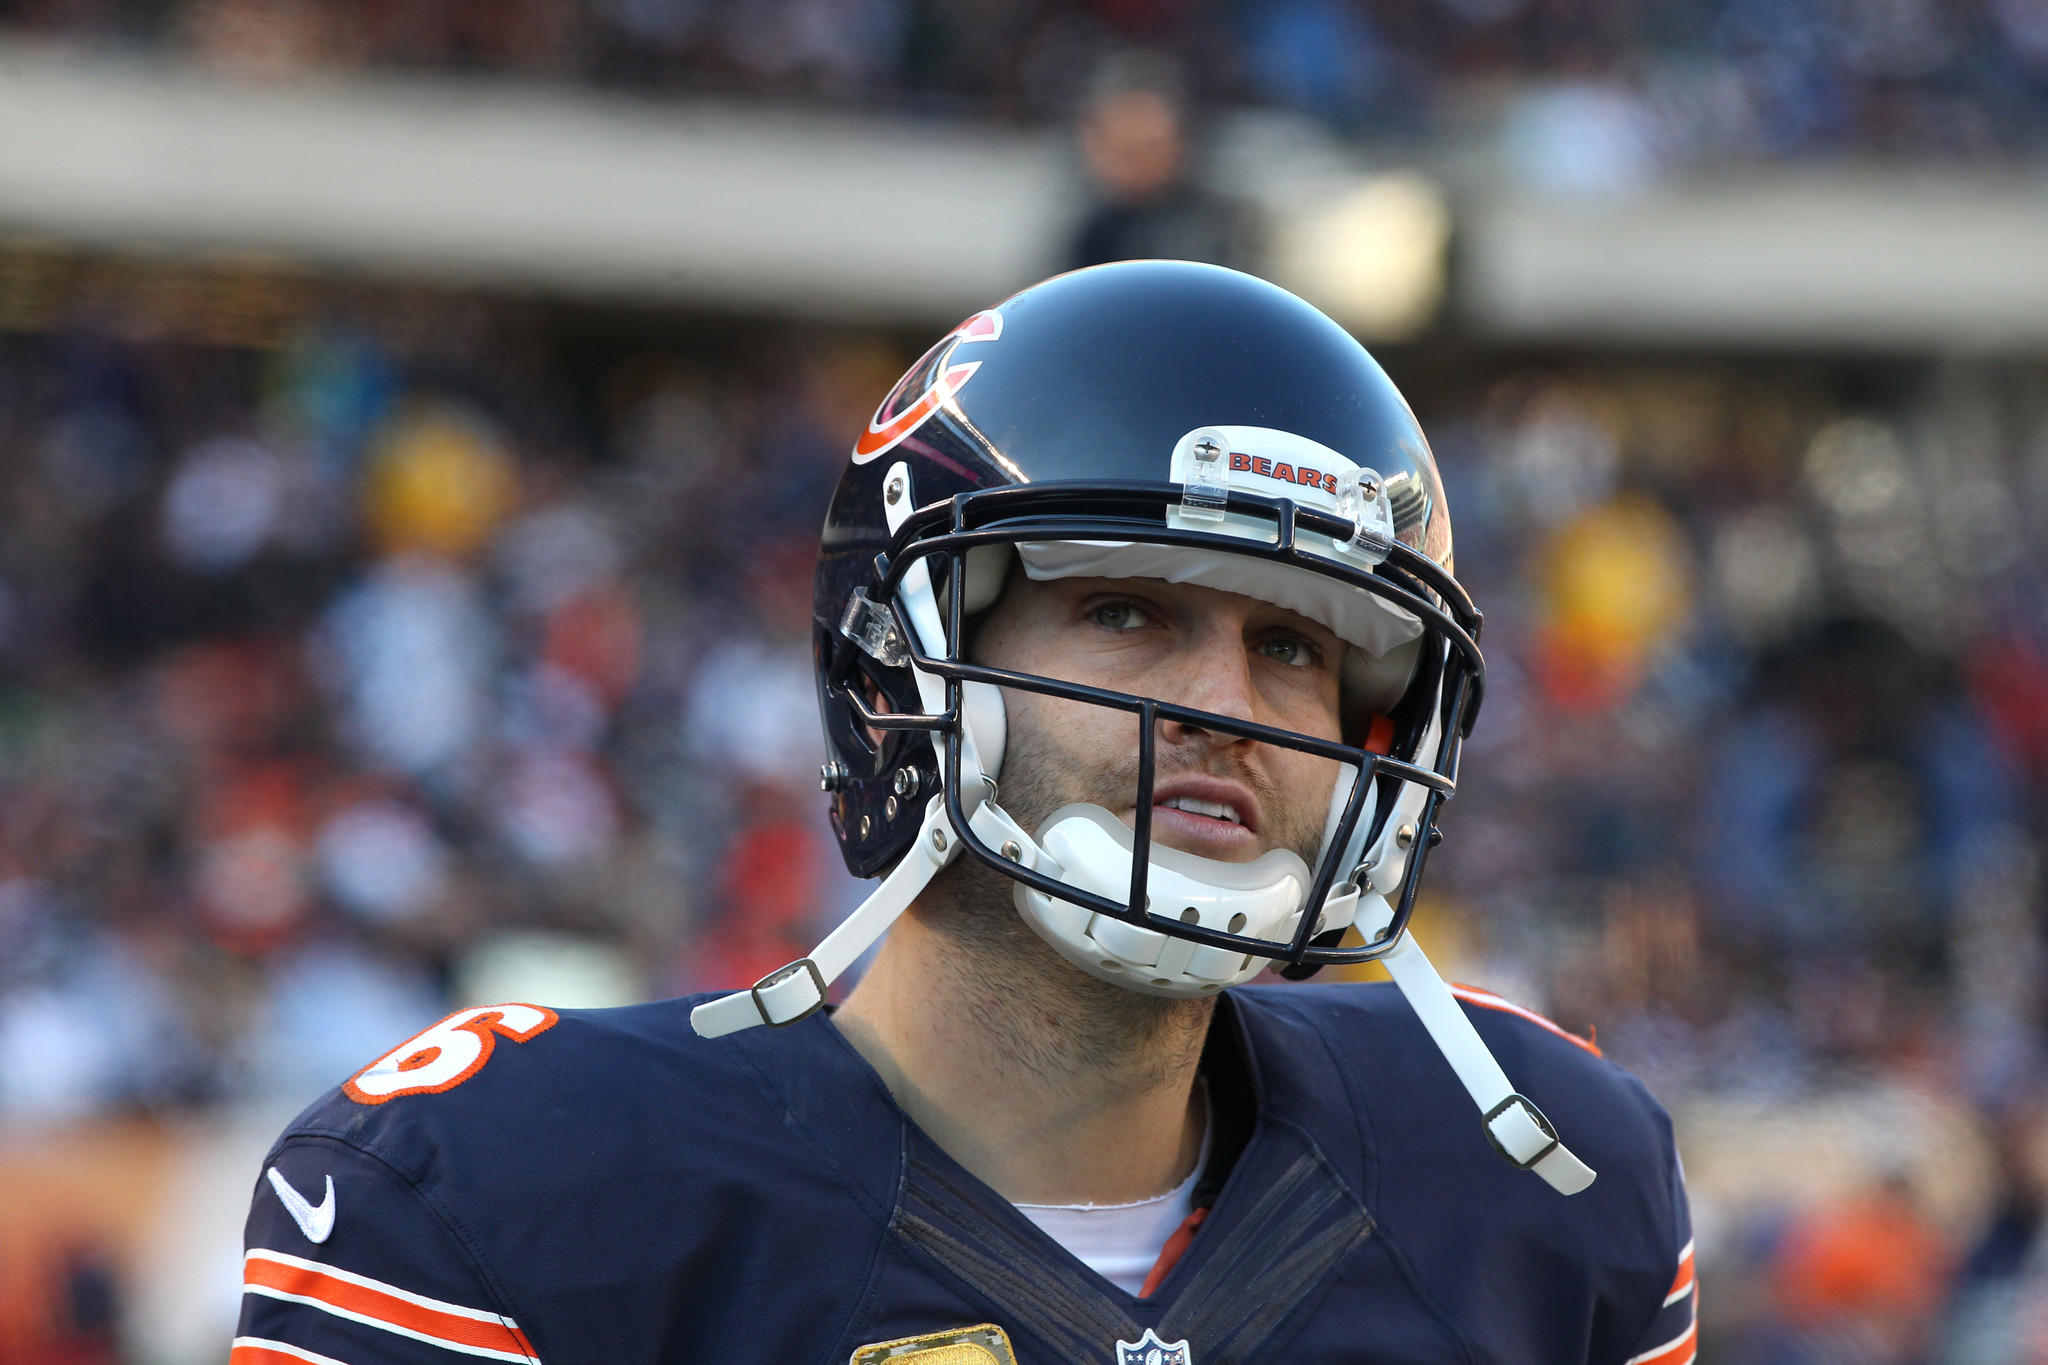 It's crunch time Sunday for Bears quarterback Jay Cutler vs. the Packers.